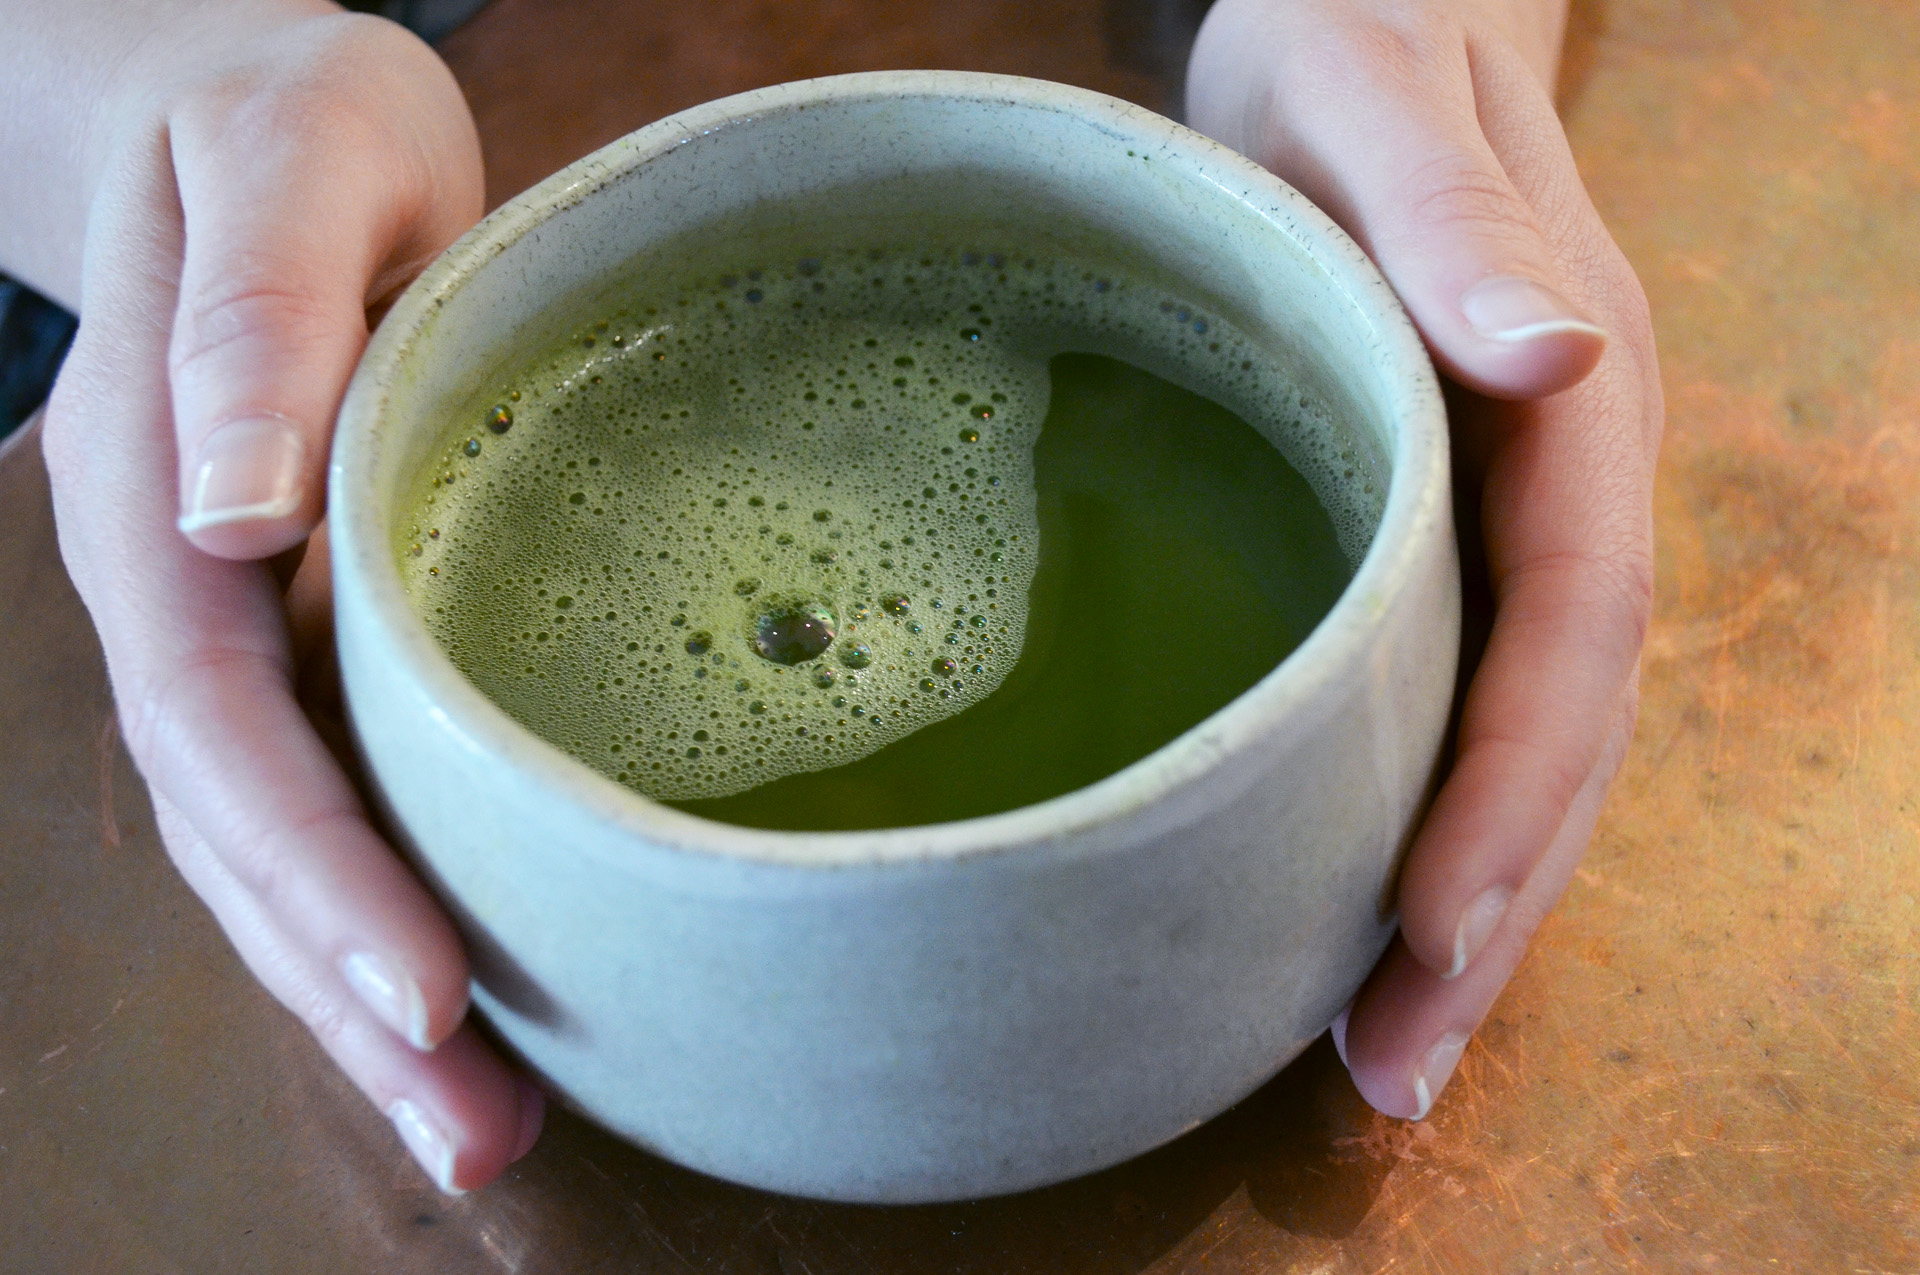 HIGH QUALITY MATCHA TEAS